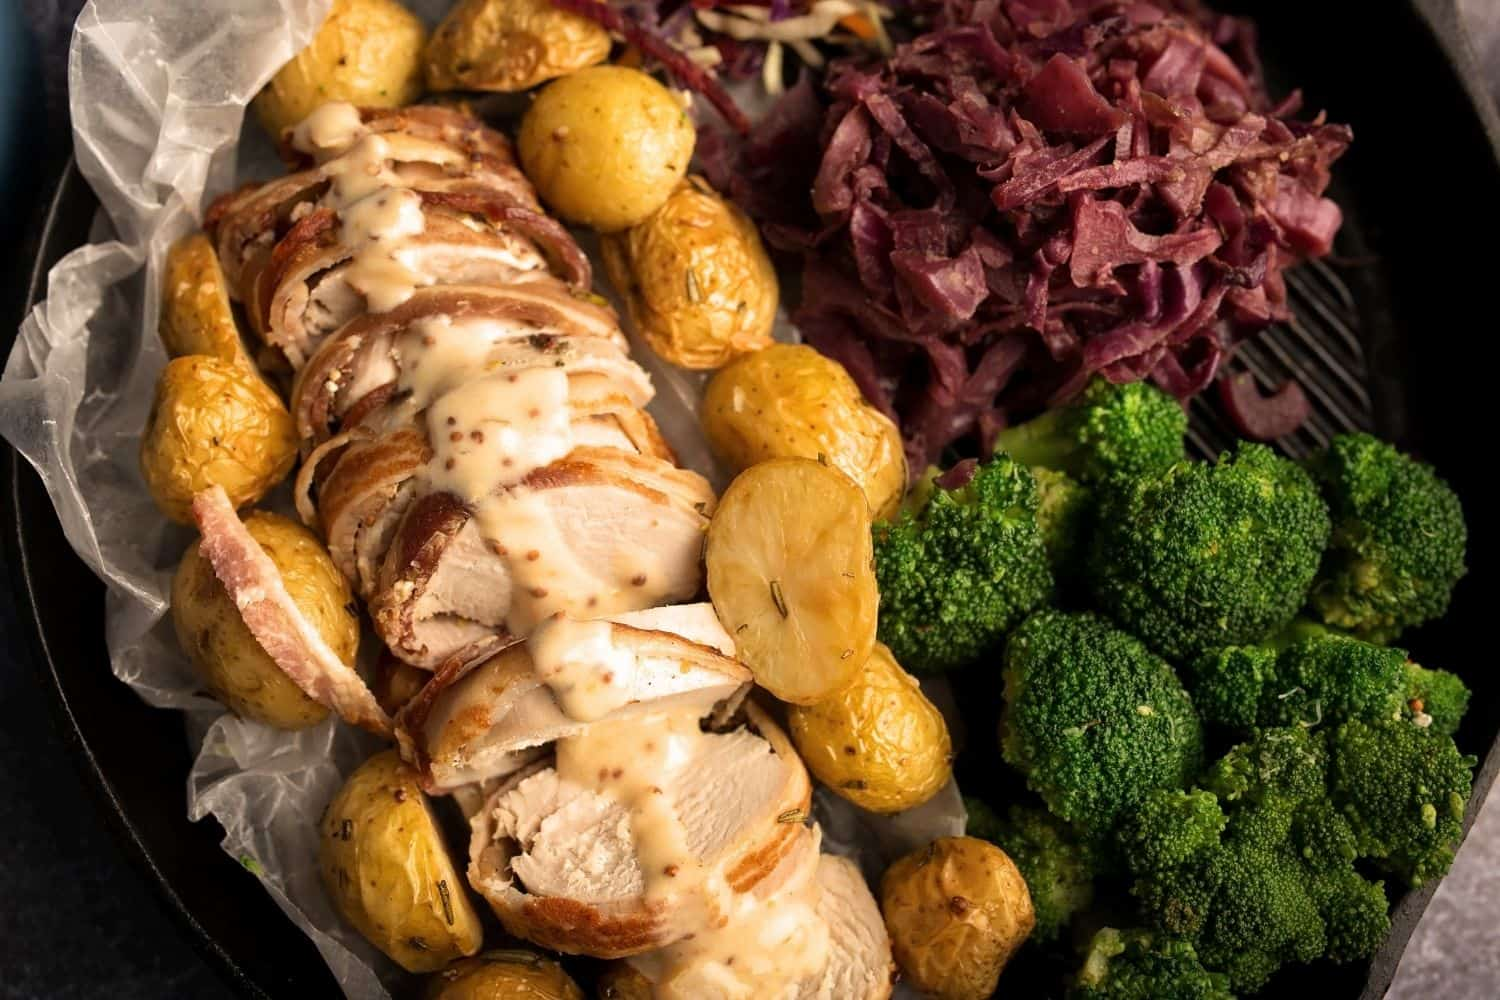 Bacon Wrapped Pork Fillet OR Chicken with Braised Red Cabbage, Roast Potato & Broccoli